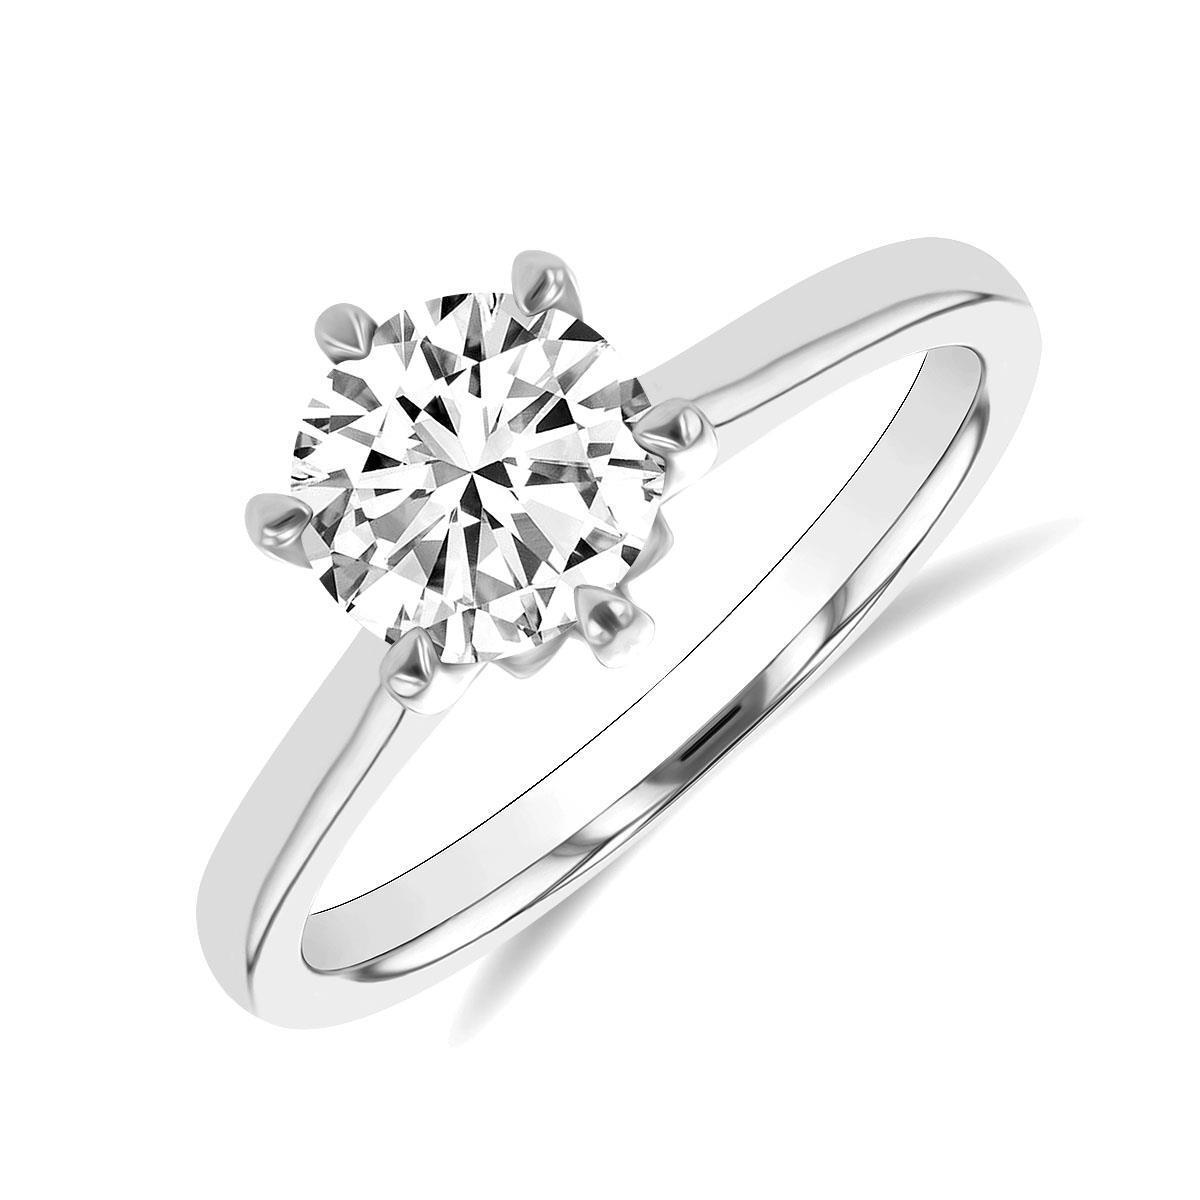 1.60ct Melody Vintage Old Cut Diamond Solitaire Engagement Ring | Platinum